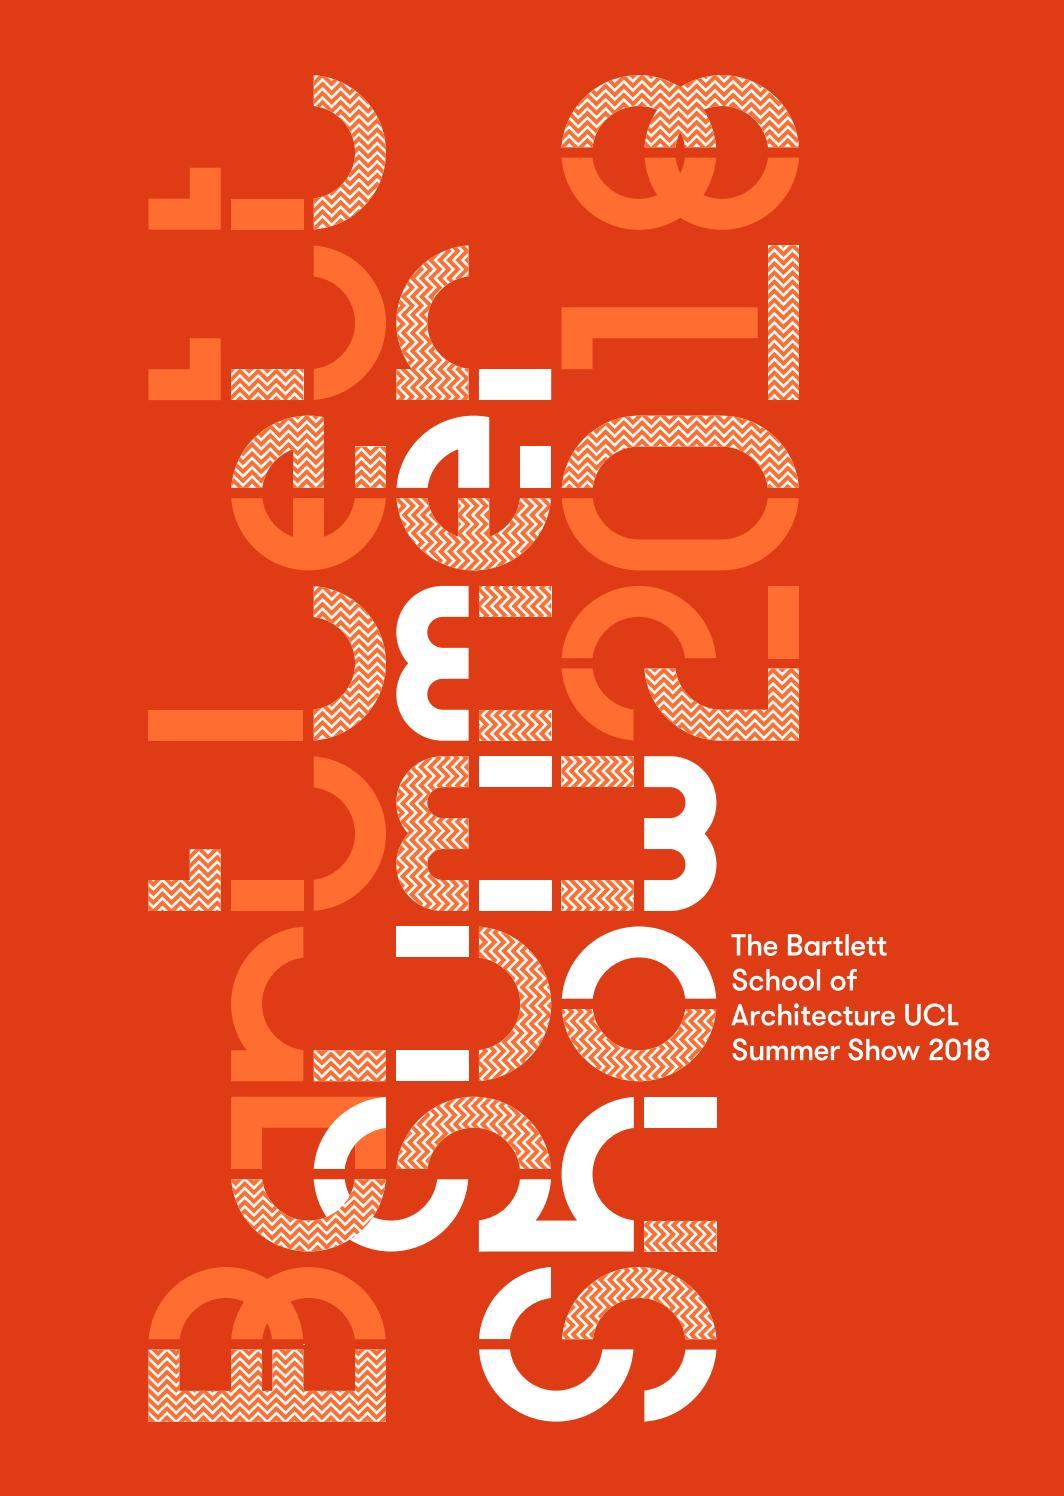 2fd123b46e3 The Bartlett Summer Show Book 2018 by The Bartlett School of Architecture  UCL - issuu